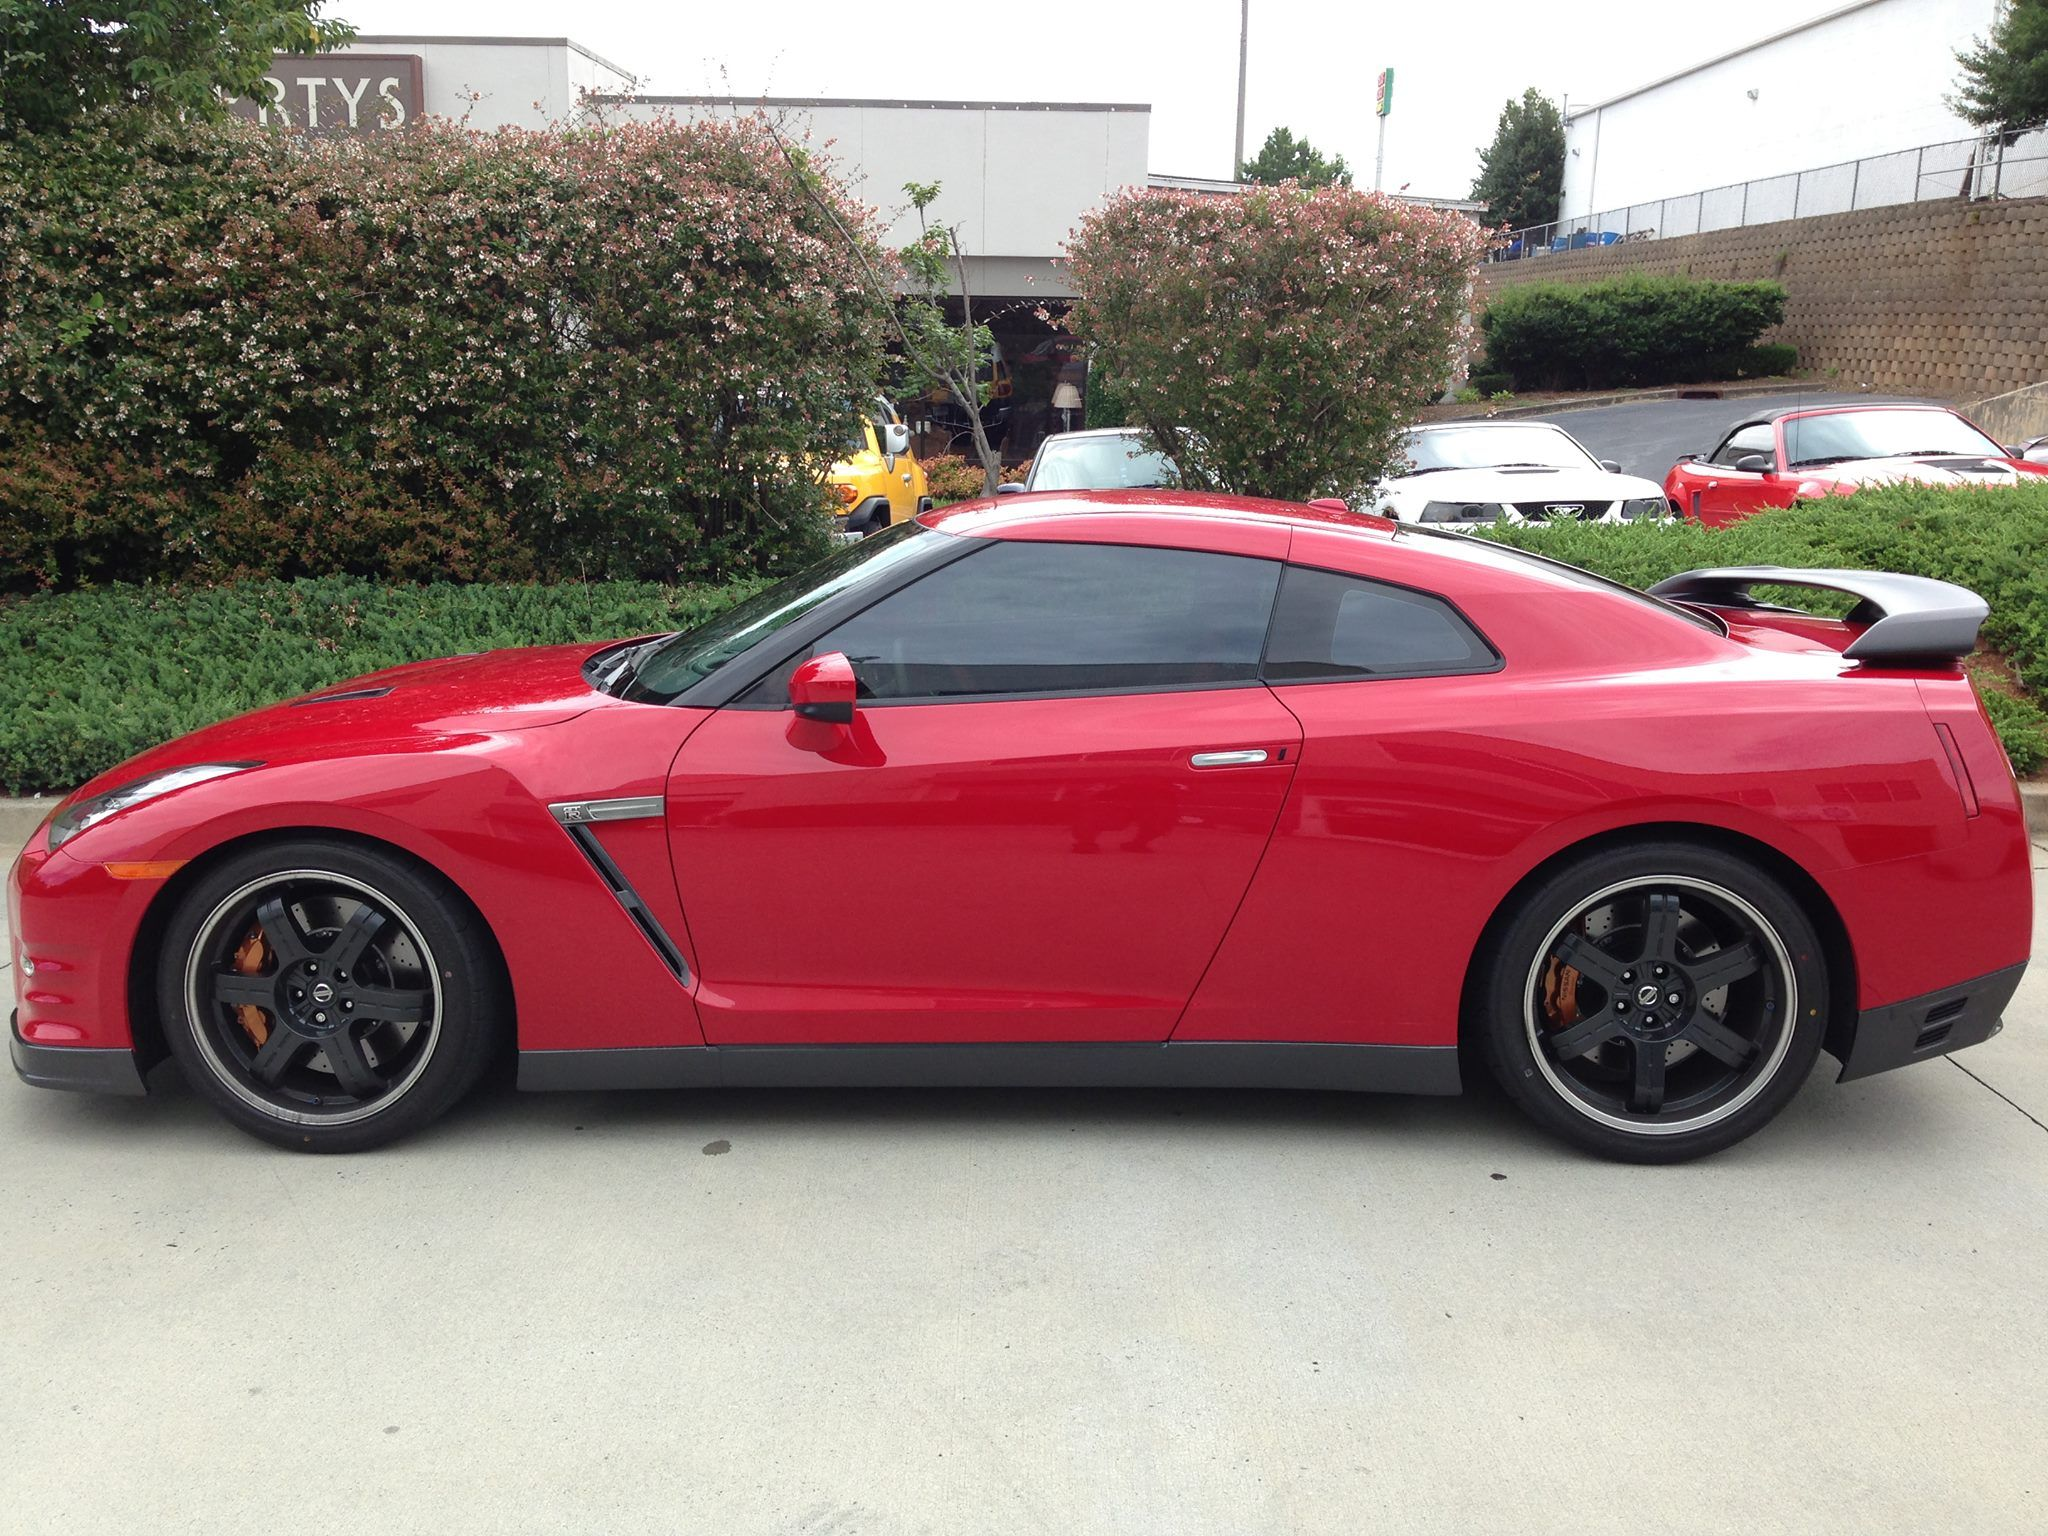 window tinting marietta ga nissan gtr with beautiful 3m crystalline window tint film installed by hot spot tinting in marietta ga nissan